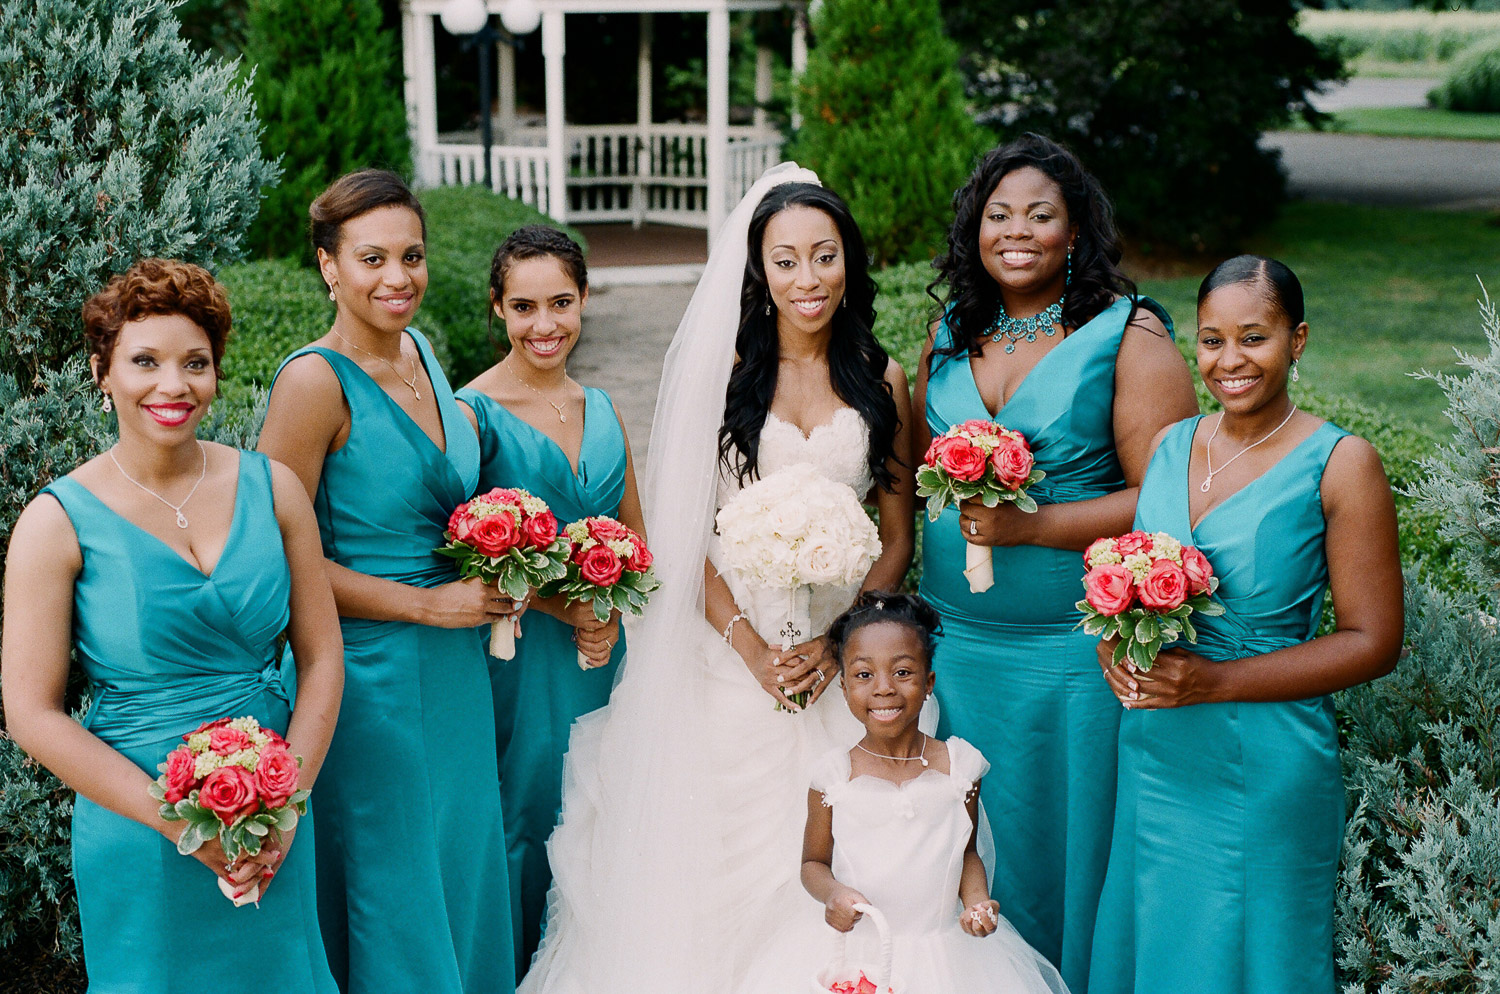 bridesmaids in turquoise dresses and bright bouquets by wendy g photography